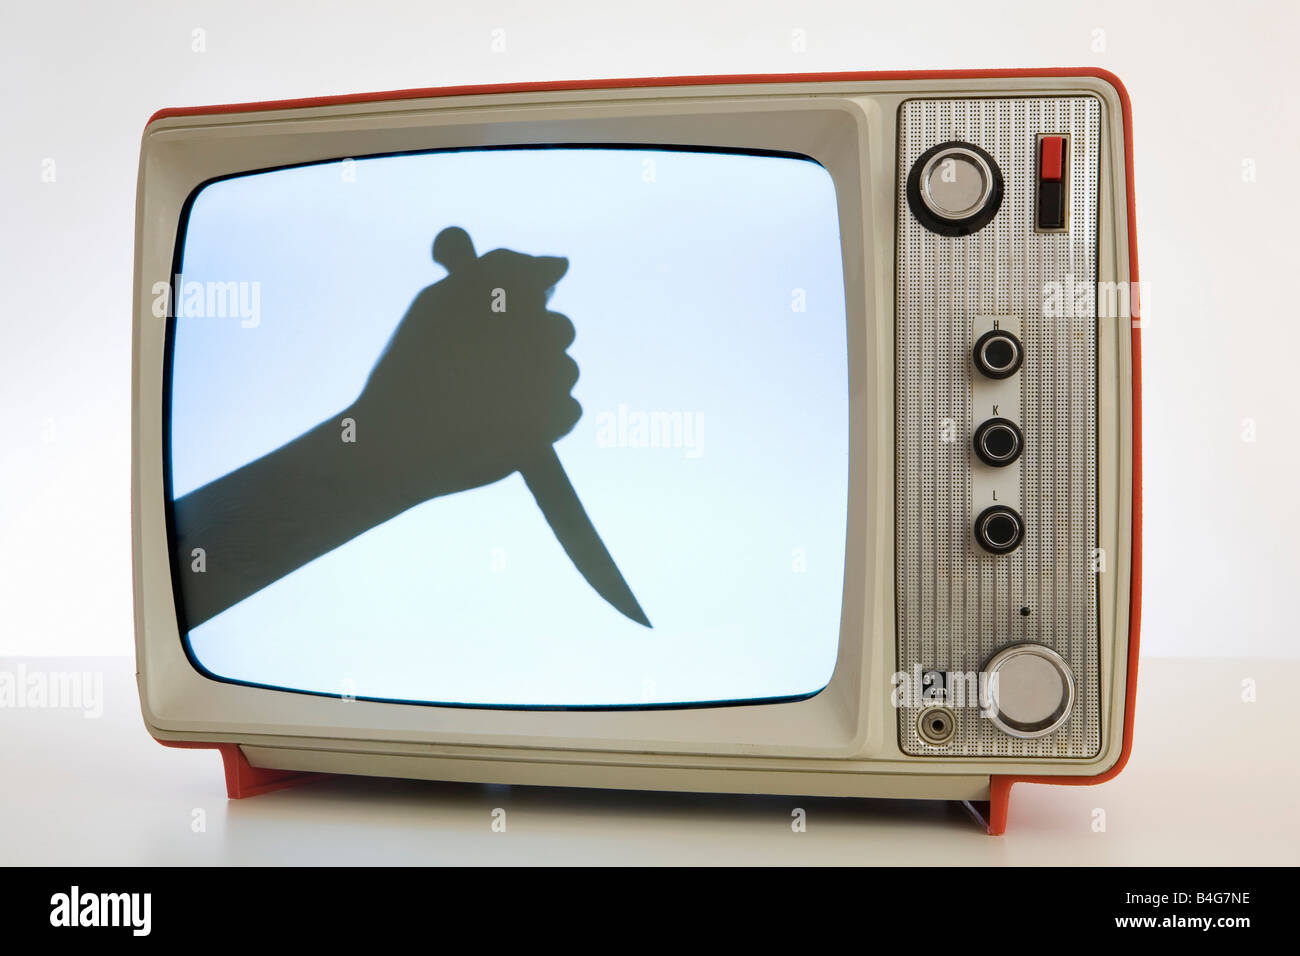 A television with a black and white image of a human hand holding a knife, silhouette - Stock Image